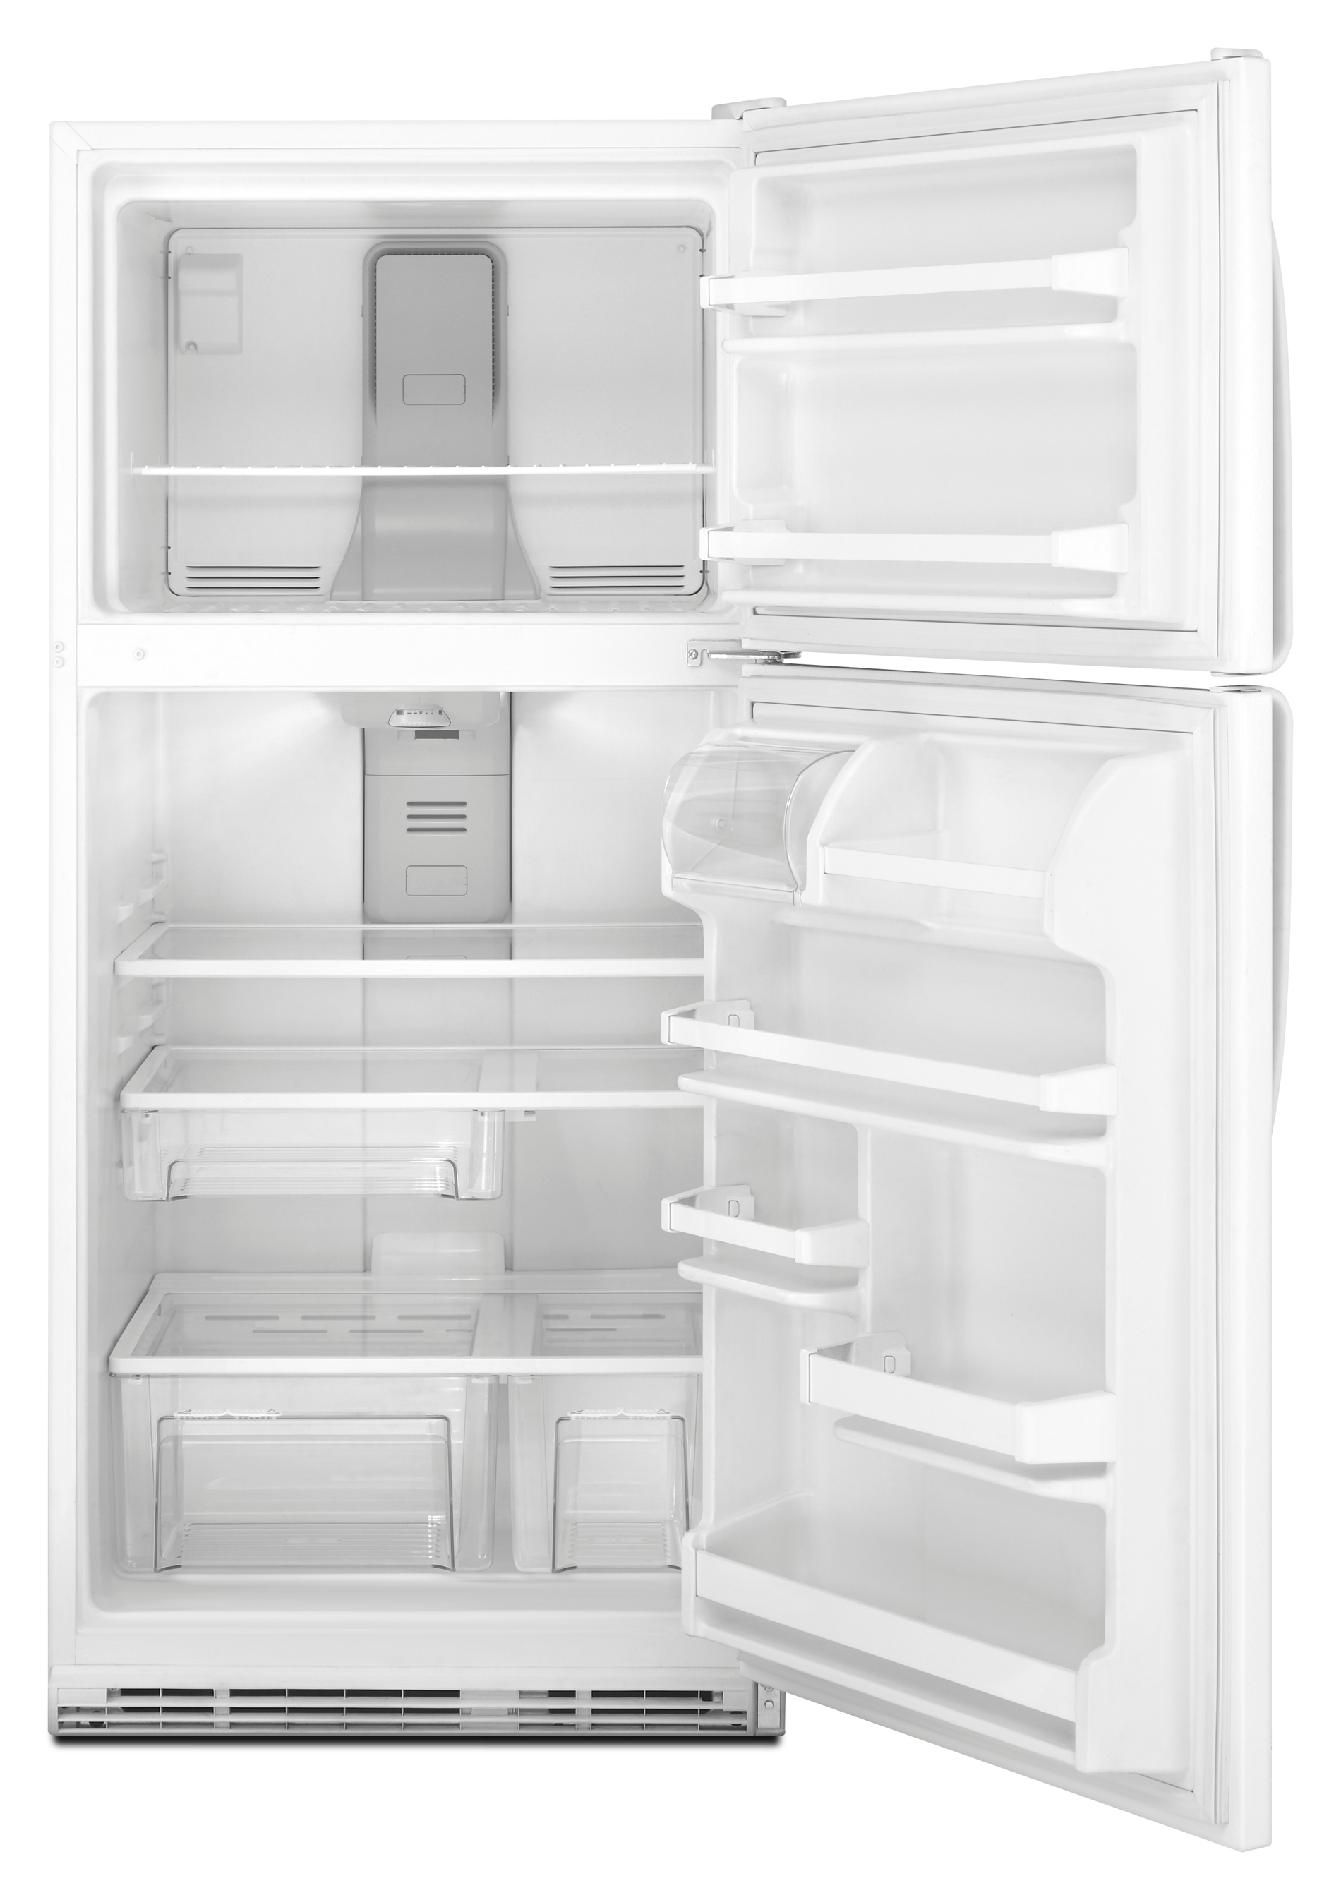 Whirlpool 18.5 cu. ft. Top-Freezer Refrigerator w/ Humidity Controlled Crispers - White